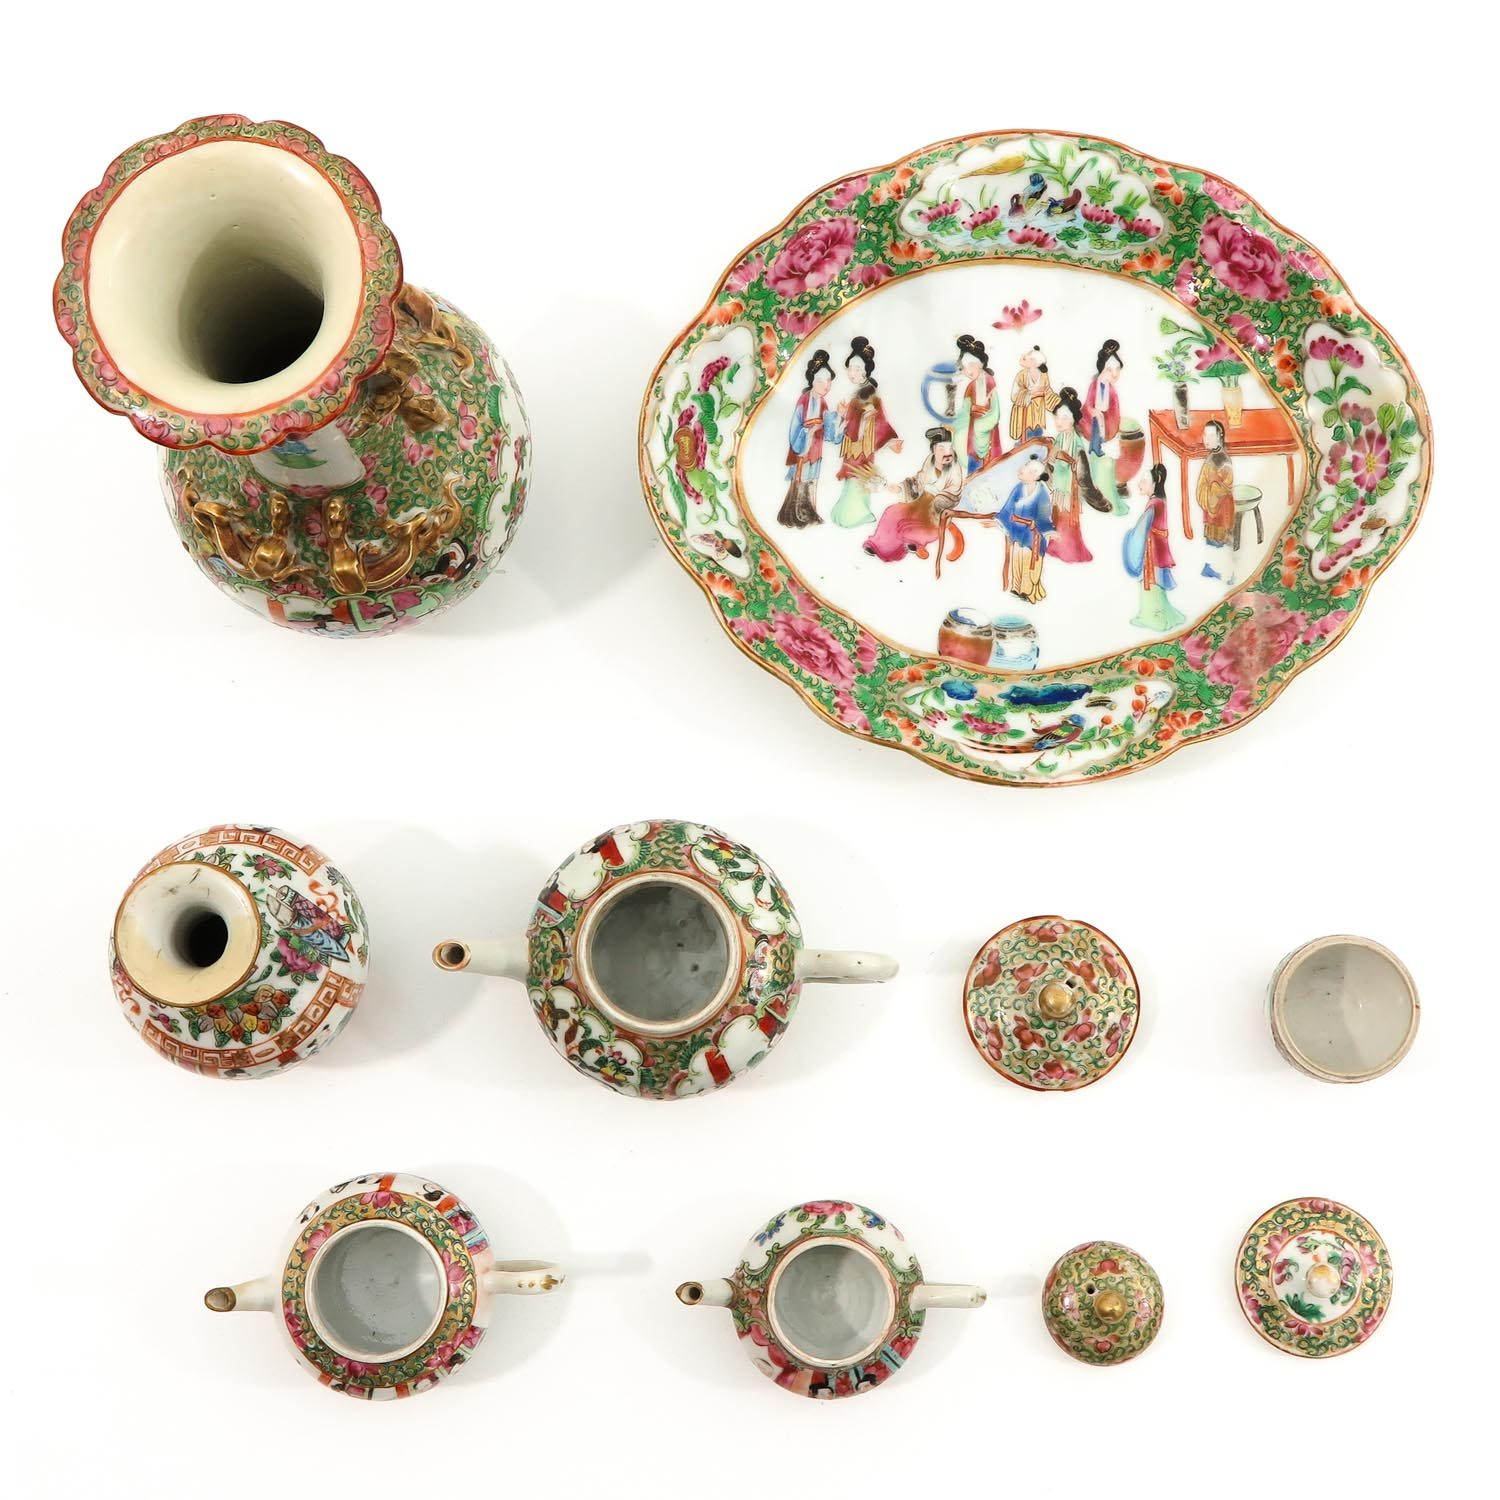 A Collection of Cantonese Porcelain - Image 5 of 10